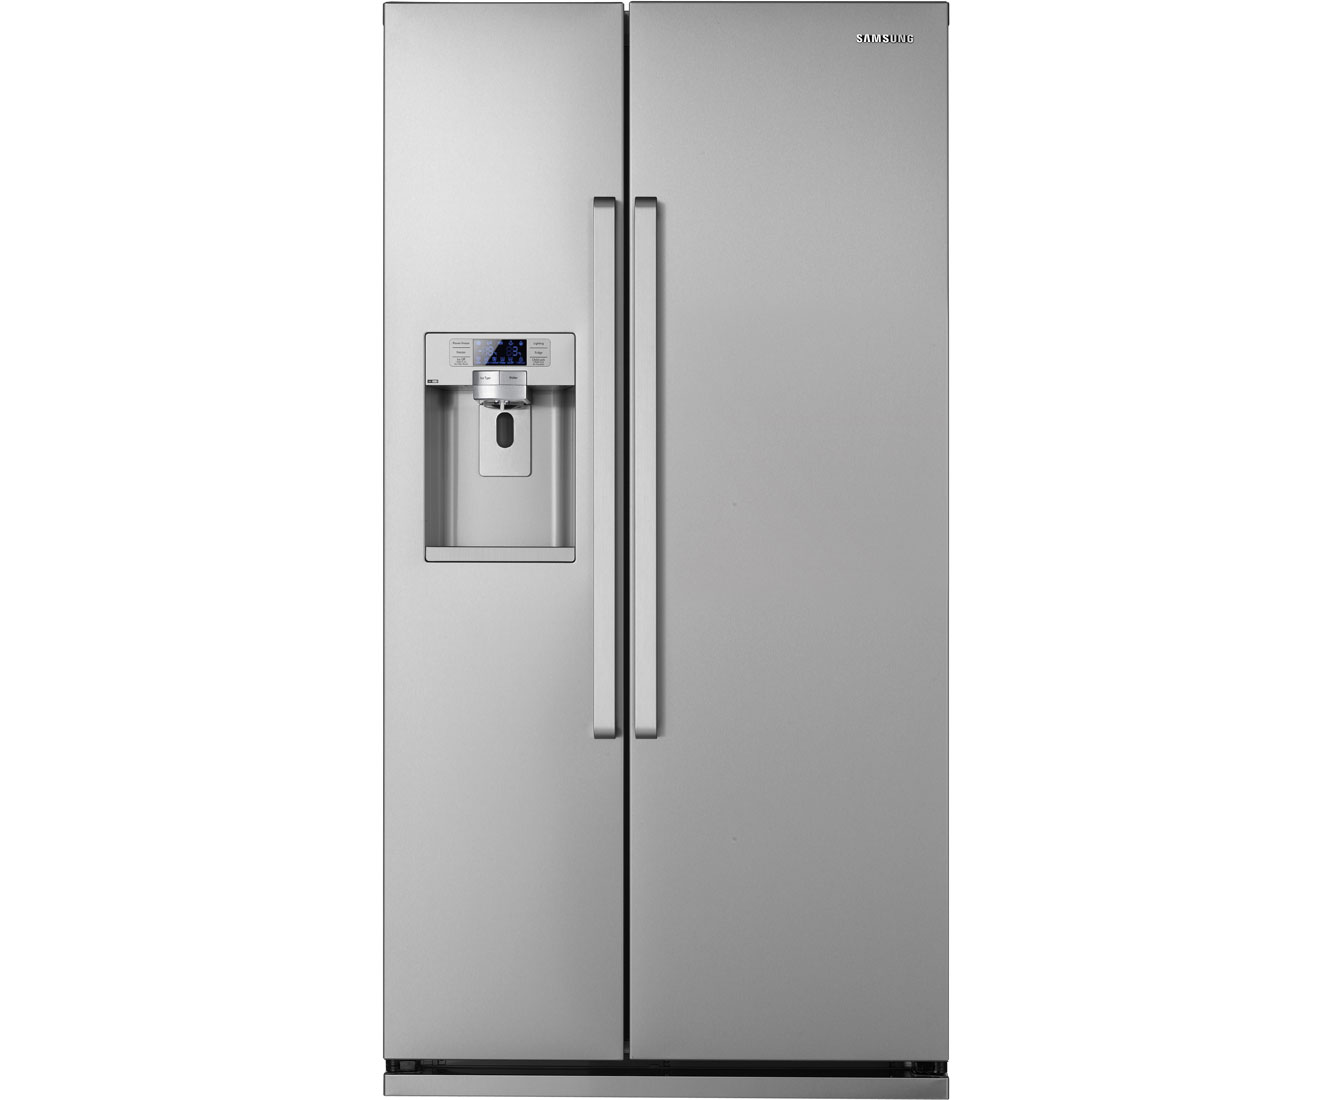 Samsung G-Series RSG5UCRS American Fridge Freezer - Stainless Steel